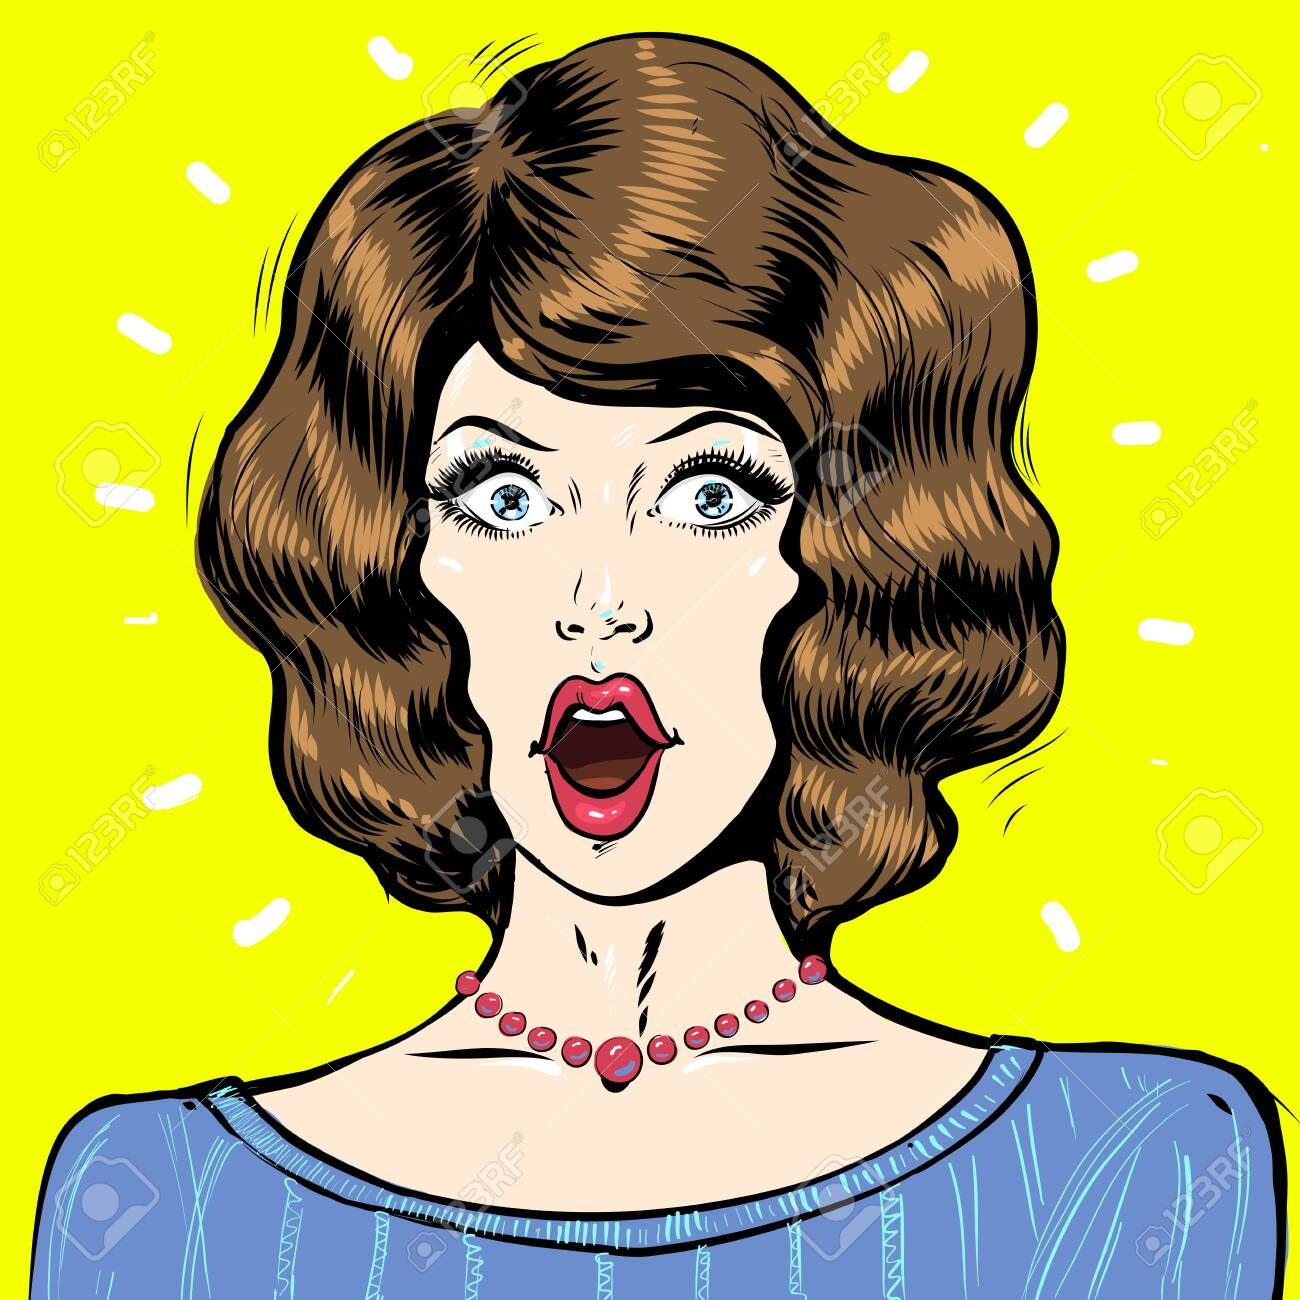 WOW pop art surprised woman face, portrait with open mouth and dark hair - 147907597